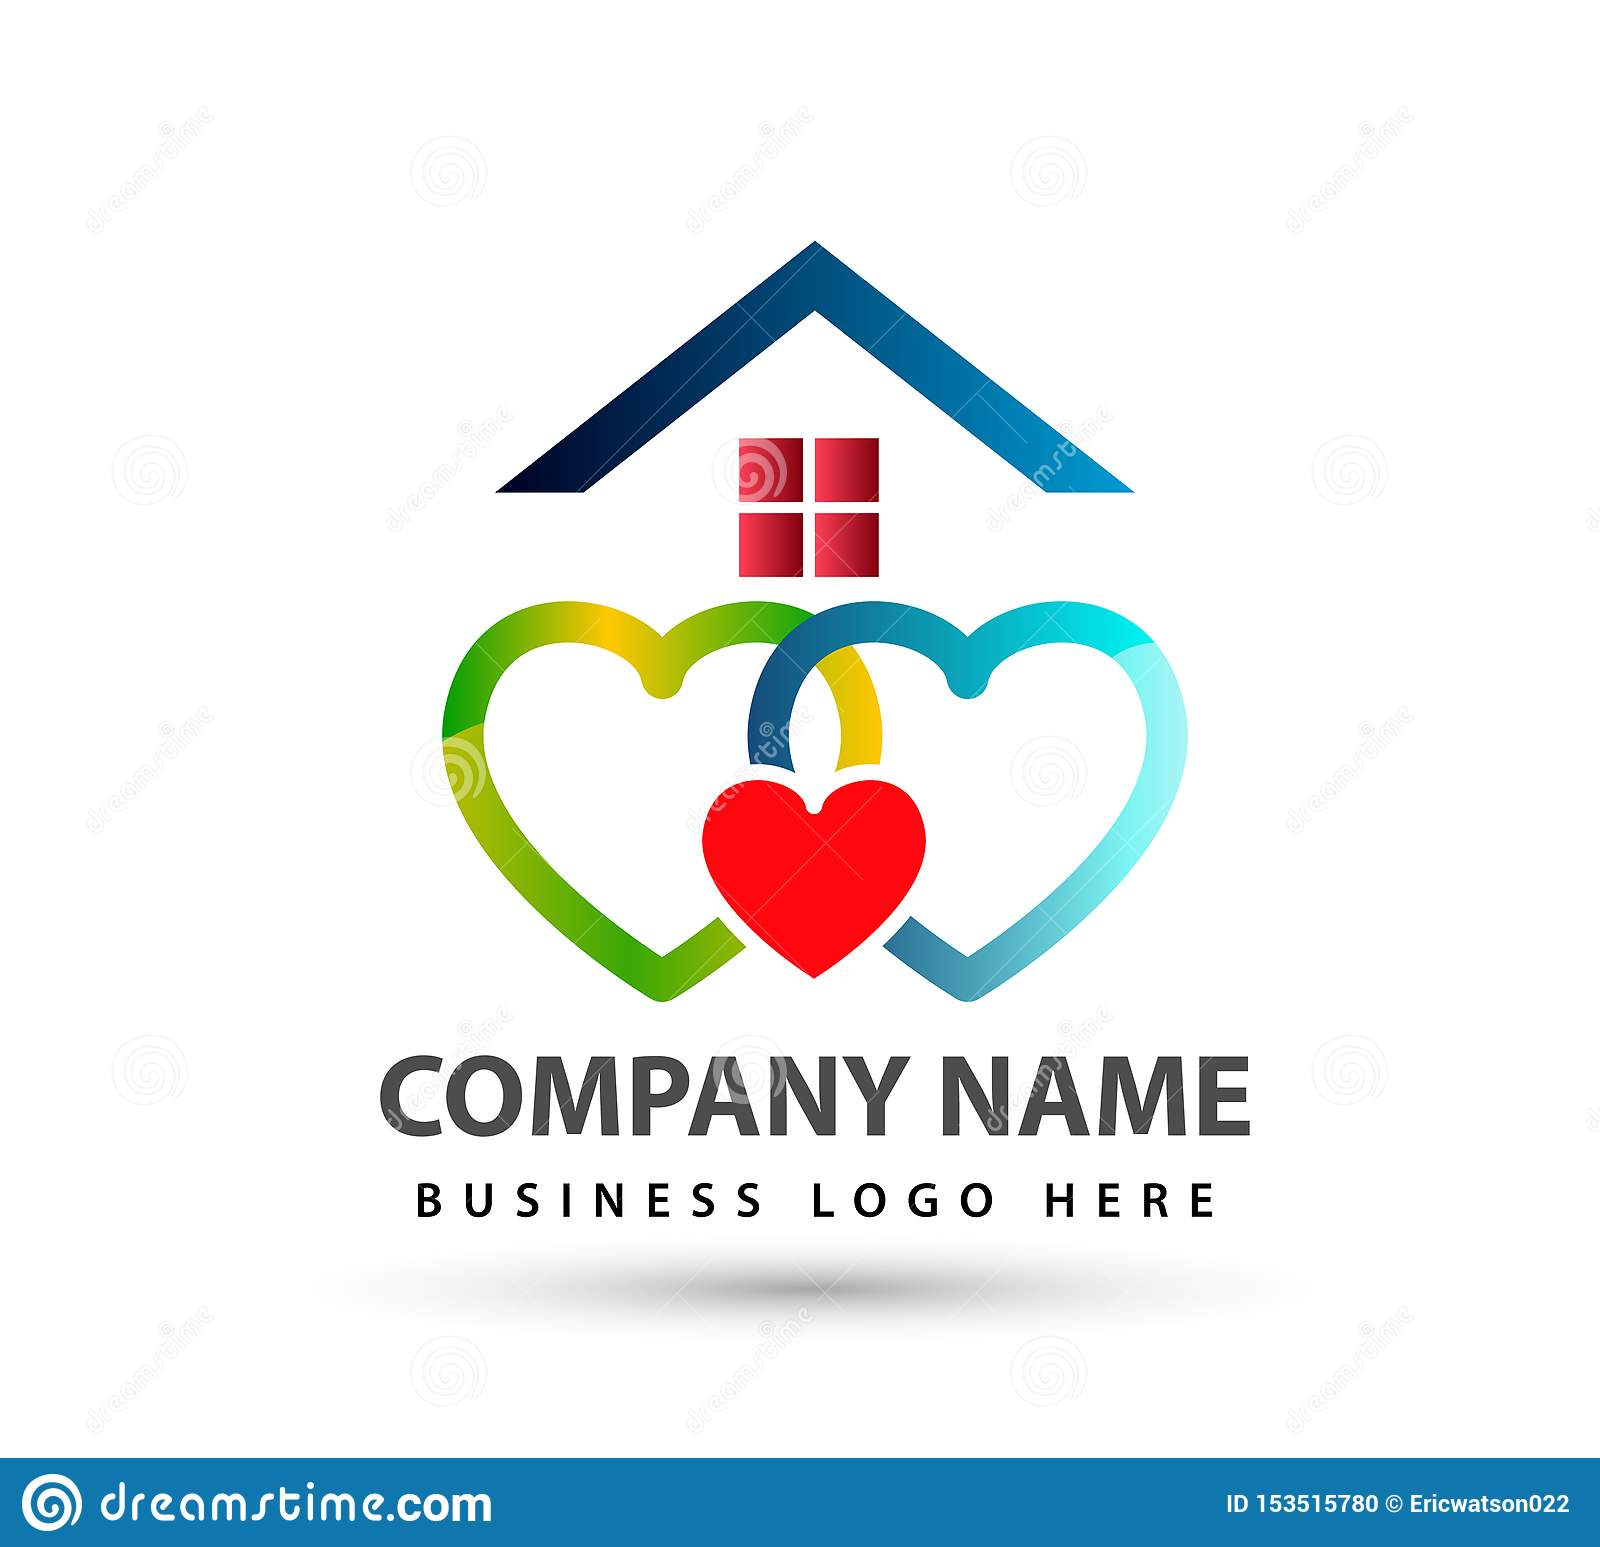 Home house union logo lovely heart parent kids love parenting care symbol icon